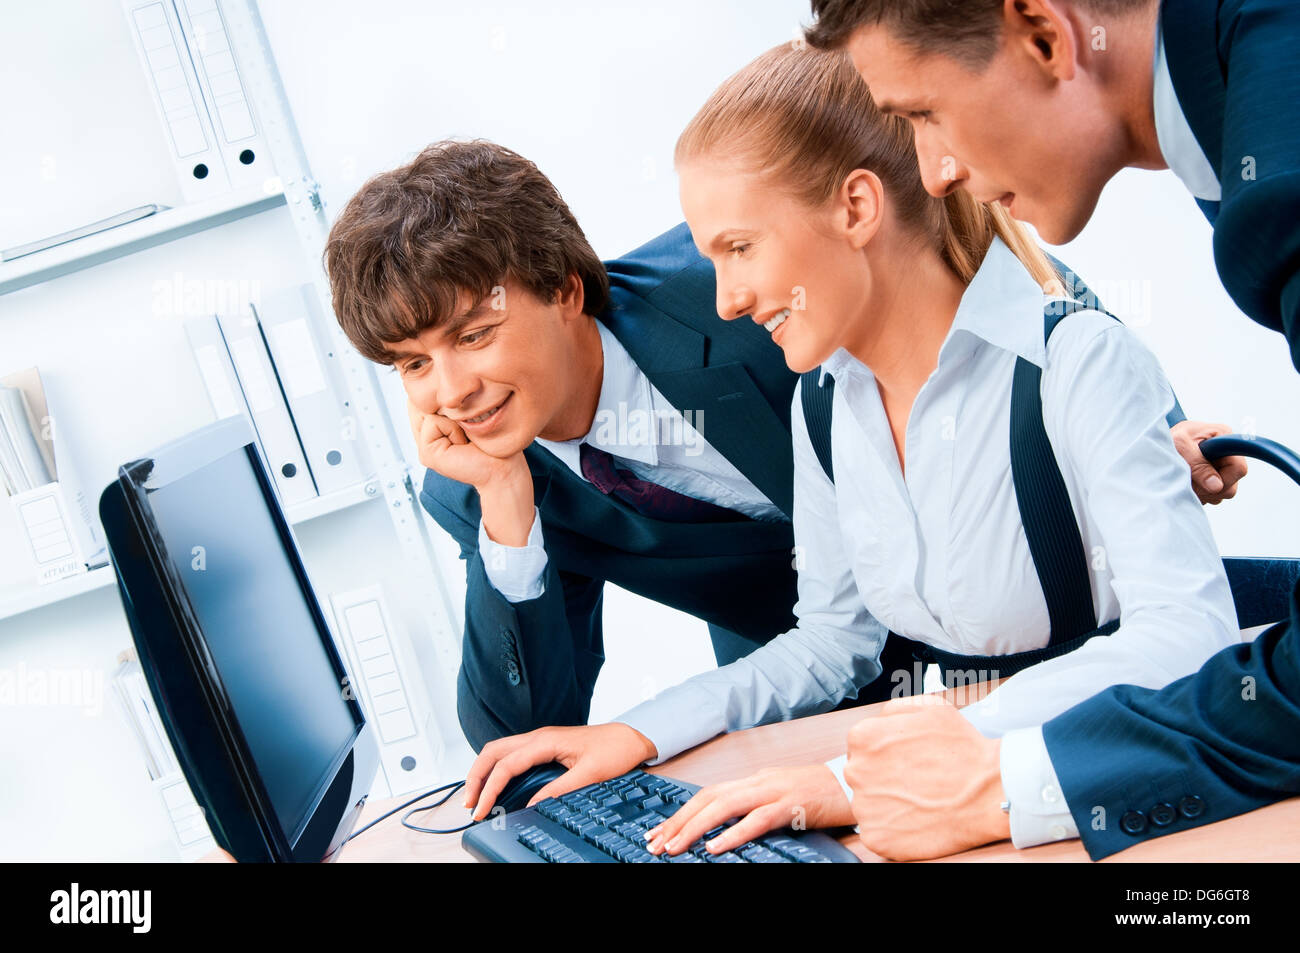 Three young successful businesspeople. Screen has a clipping path. - Stock Image